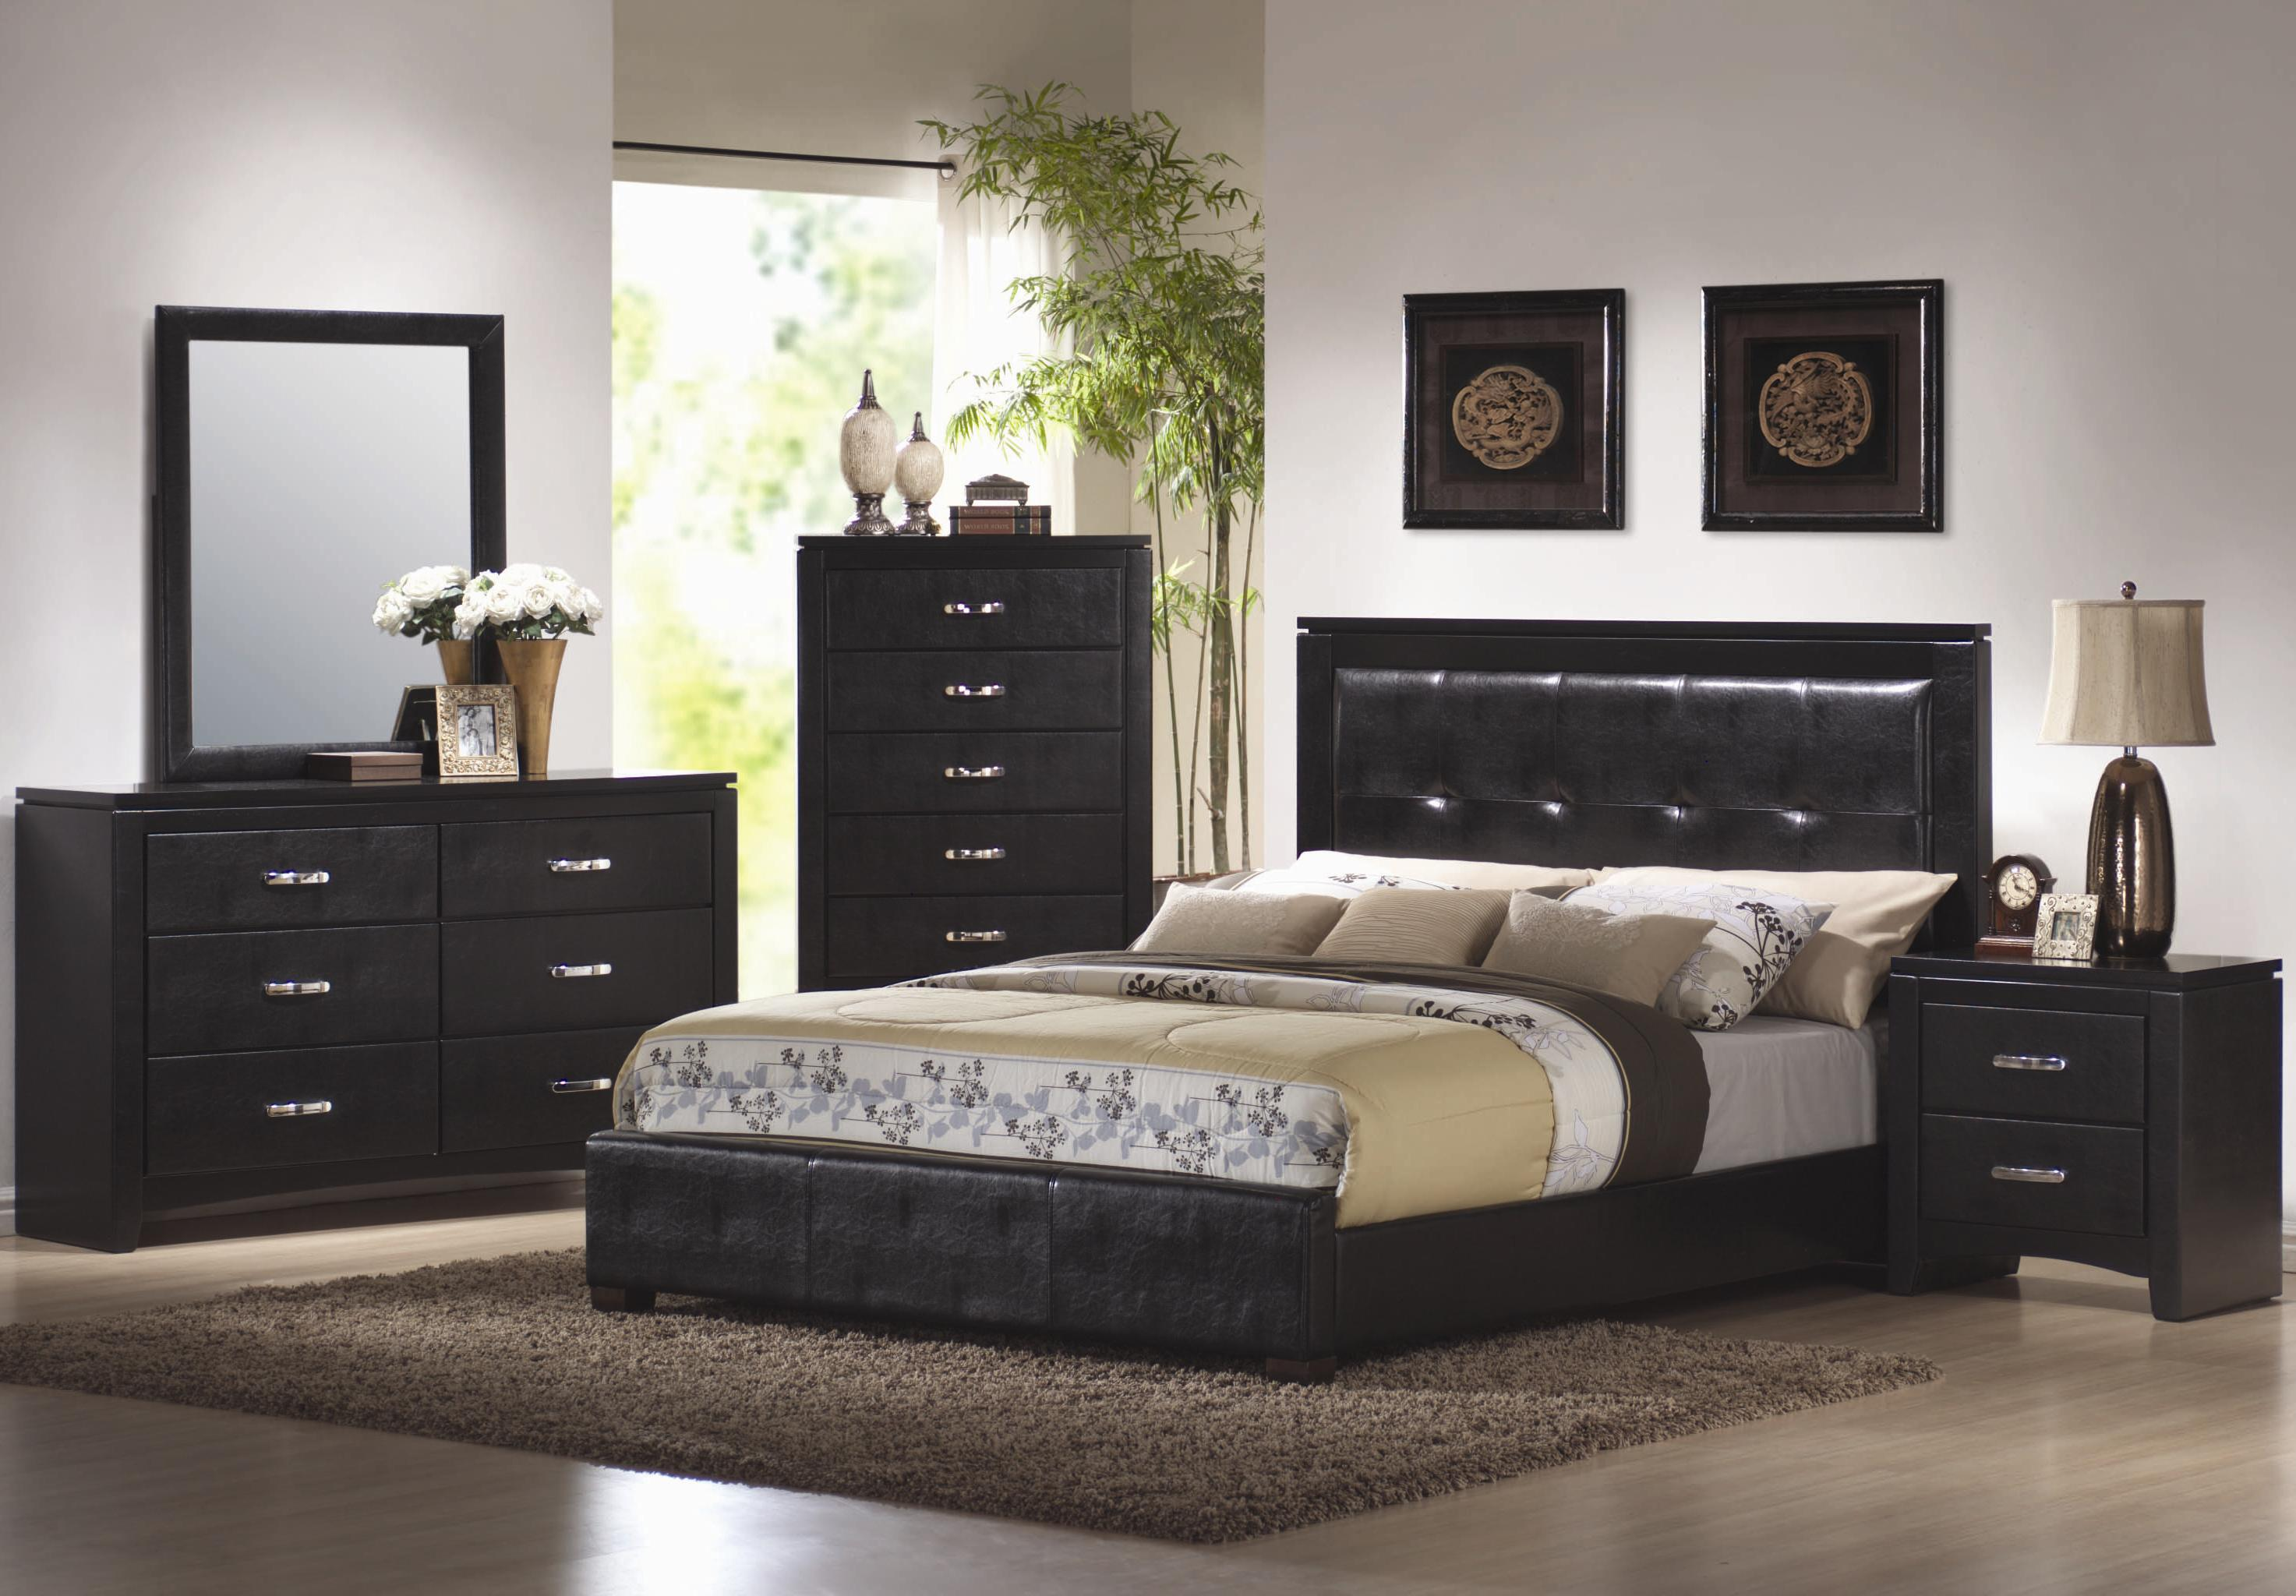 Bedrooms I Texas Furniture Outlet - Next furniture sale bedroom